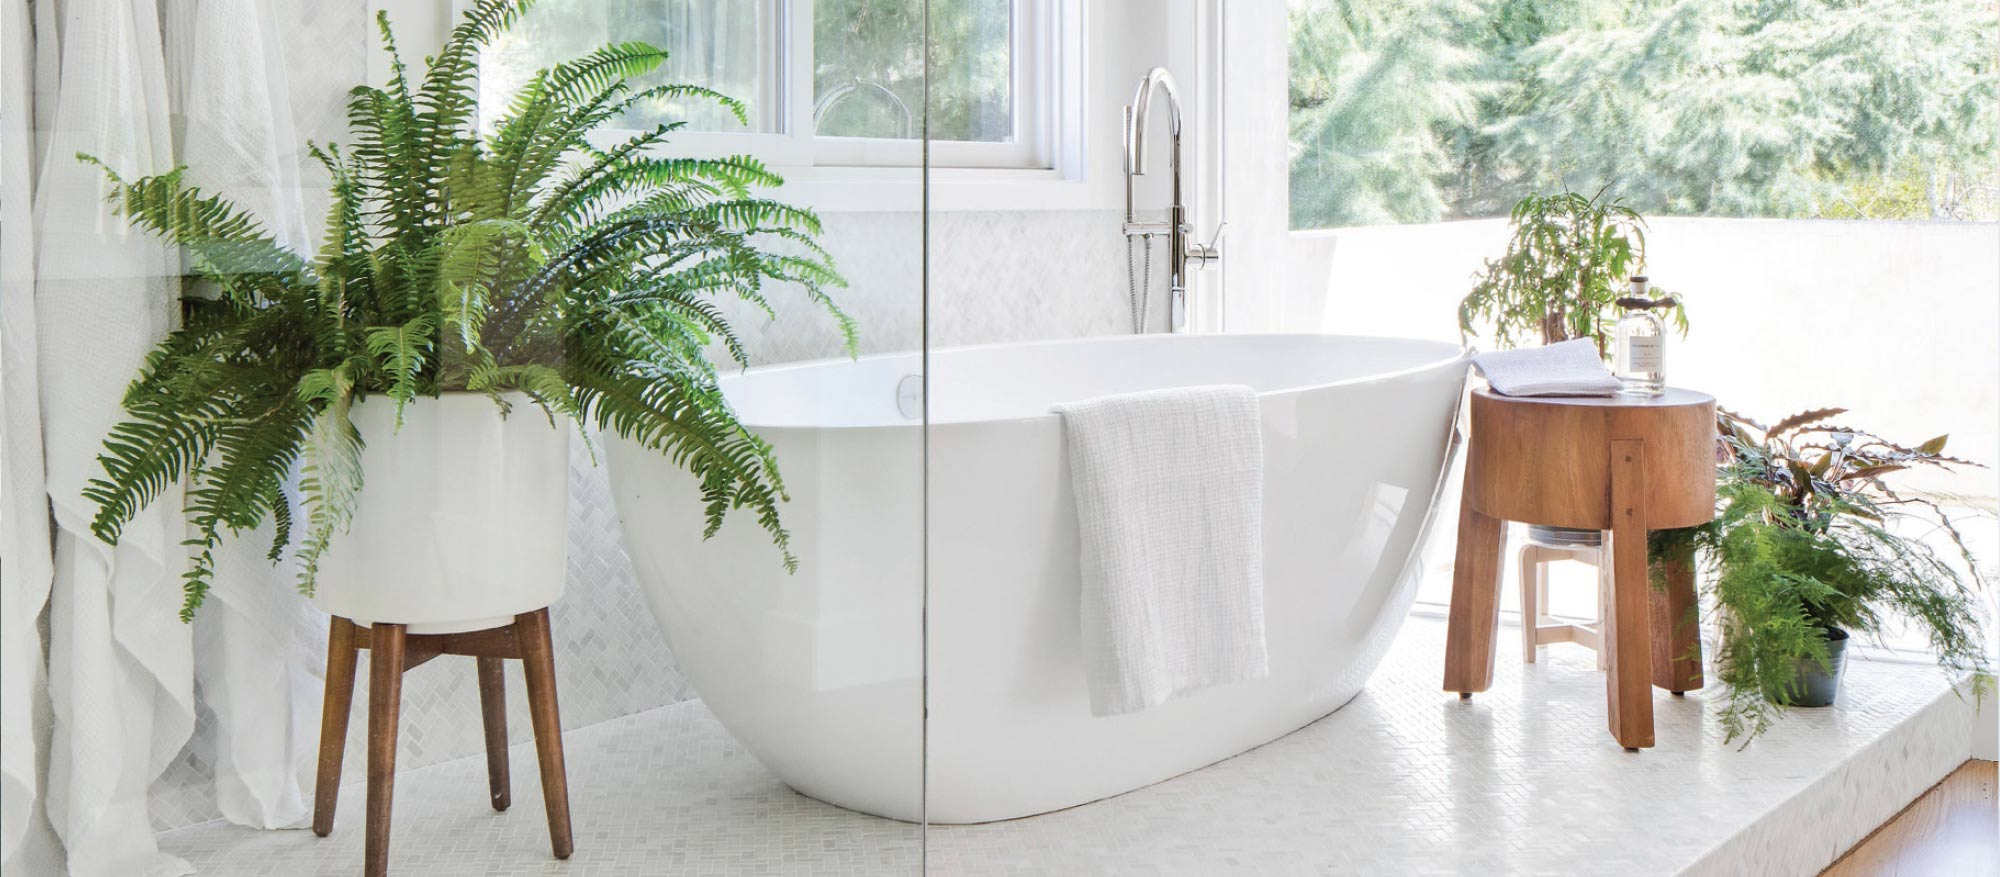 Bathroom Interior Design Competition - win a trip to Italy | Luxe by Design, Australia